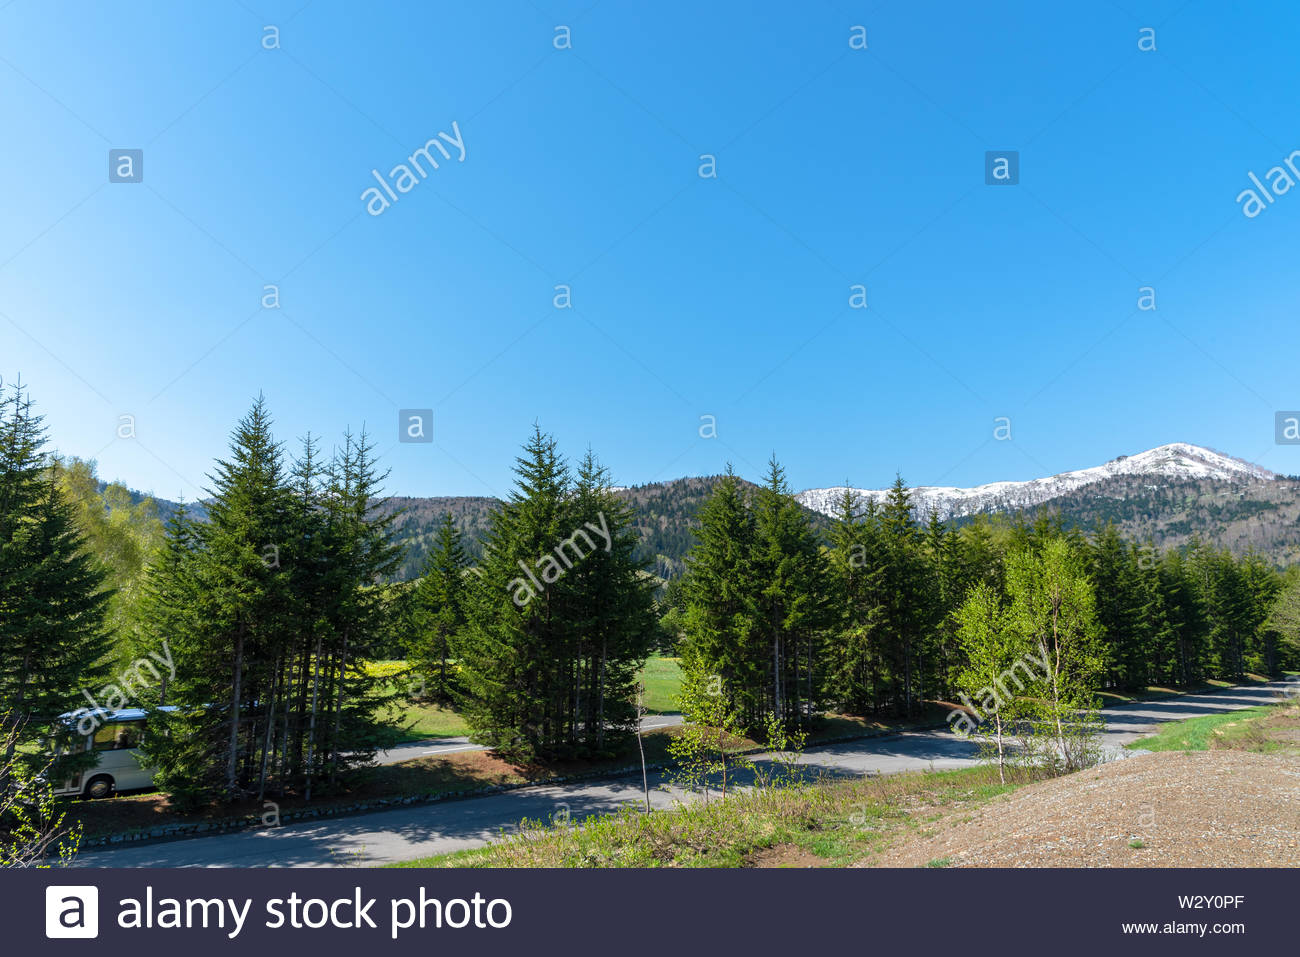 Row of trees on foreground mountains with vast blue sky on background in sunny day in summer time. Nature landscape, beautiful scenic countryside view - Stock Image